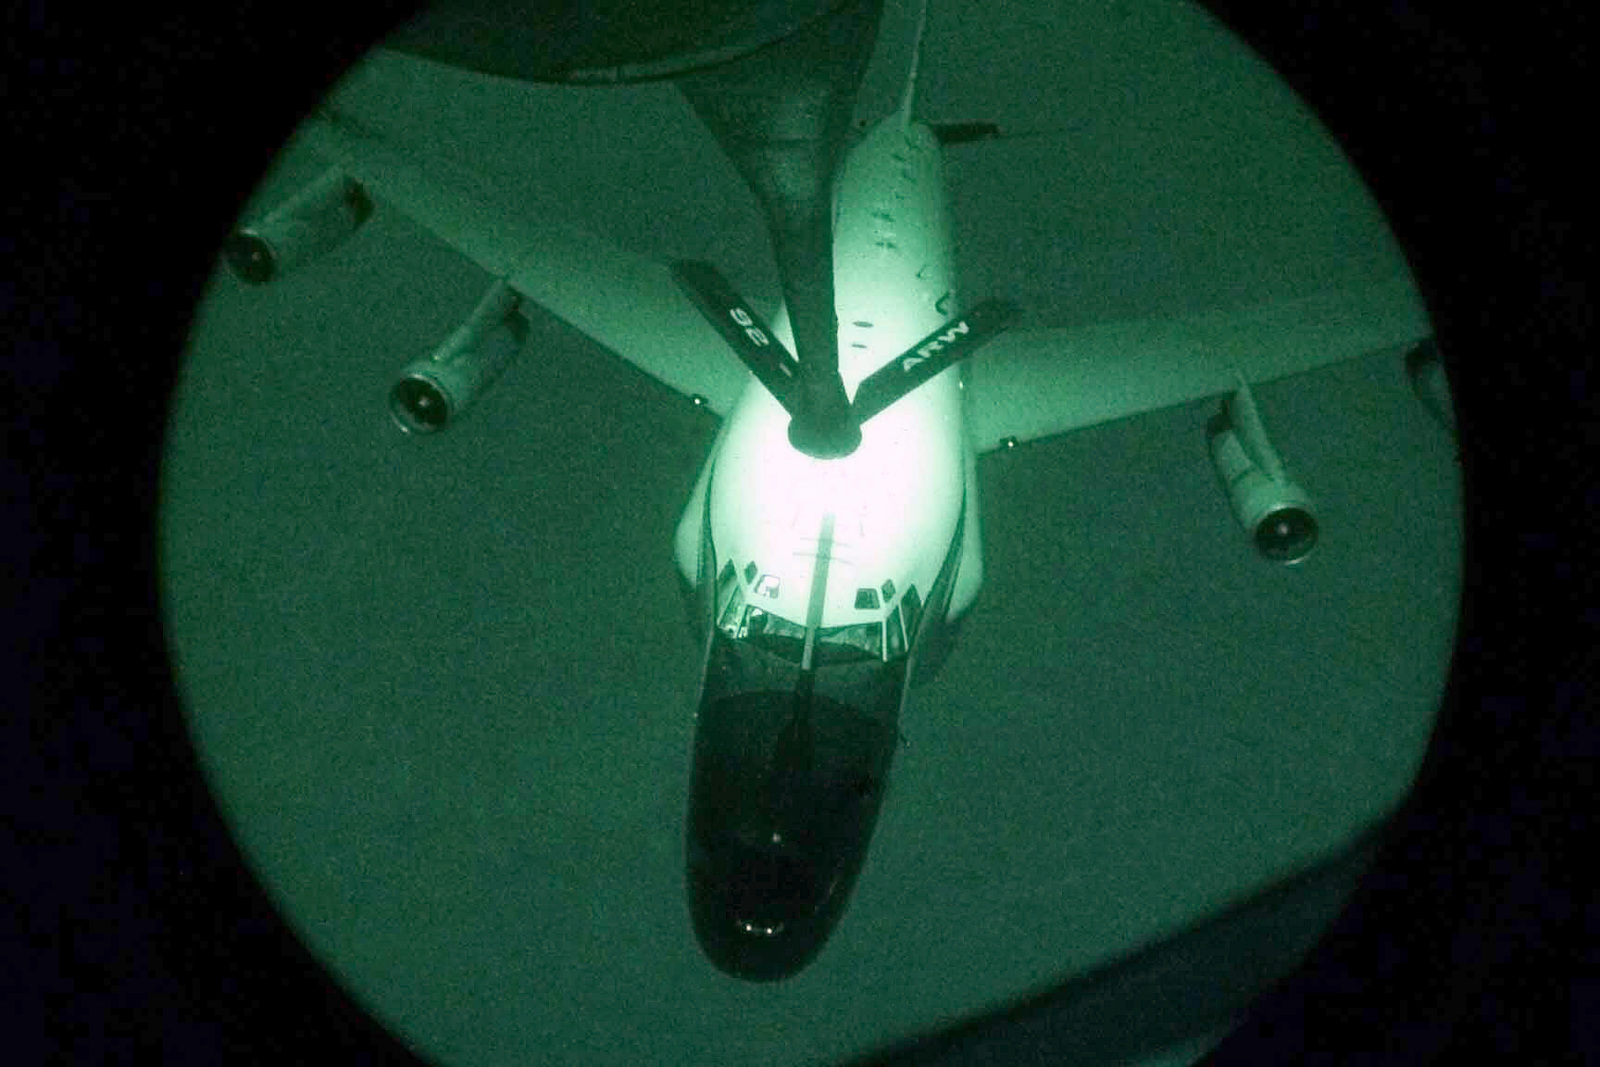 Light enhanced, fisheye lens view, showing a USAF RC-135 Rivet Joint aircraft, approaching the refueling boom of a USAF KC-135 Stratotanker aircraft, from the 96th Air Refueling Squadron, while patrolling the no fly zone over Southern Iraq, in support of Operation SOUTHERN WATCH